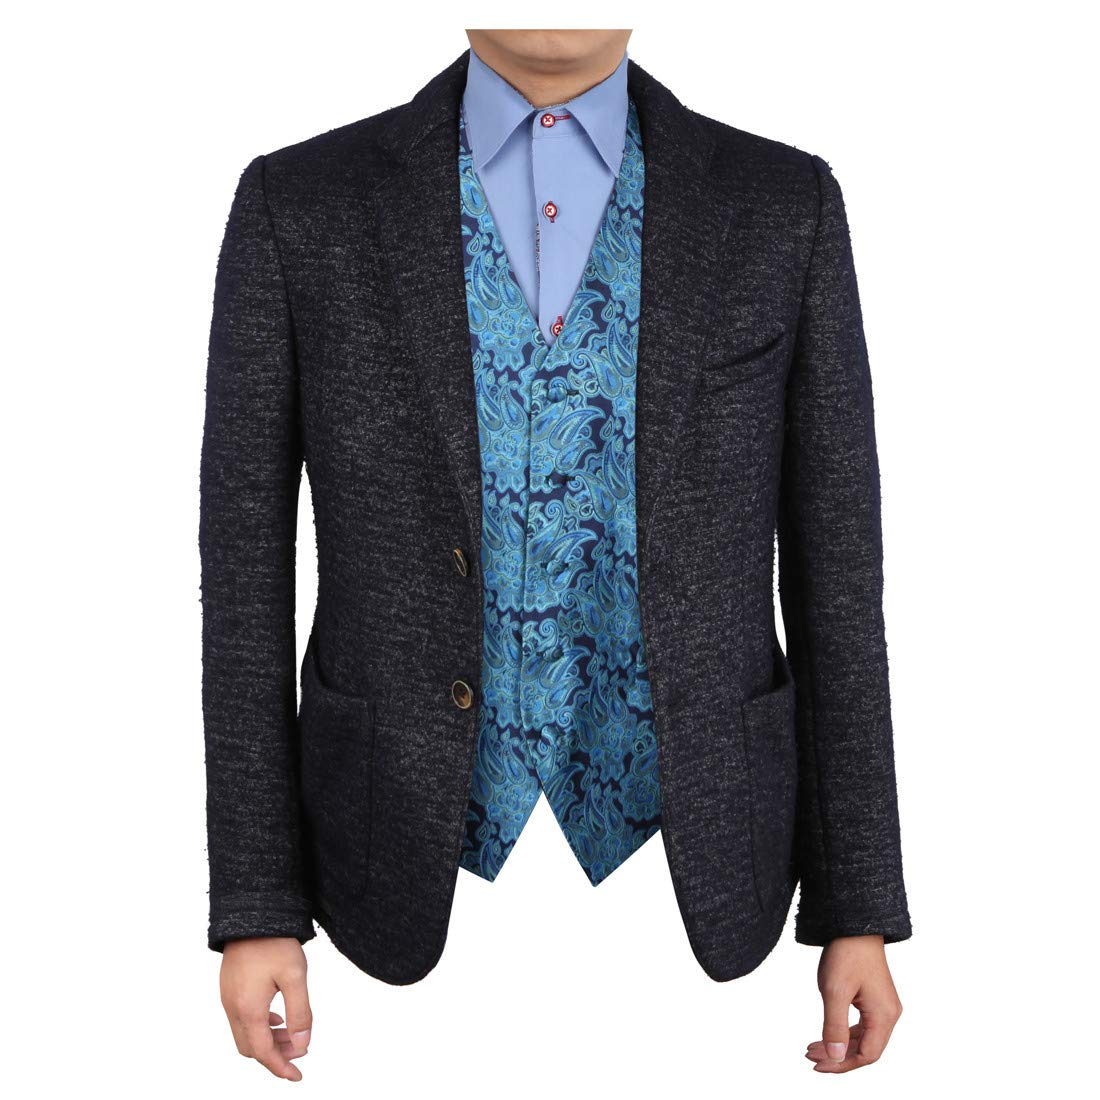 Epoint EGC1B06B-2XL Dark Turquoise Patterned Love For Marriag Waistcoat Woven Microfiber Bridegrooms Mens Vests XX-Large Vest by Epoint